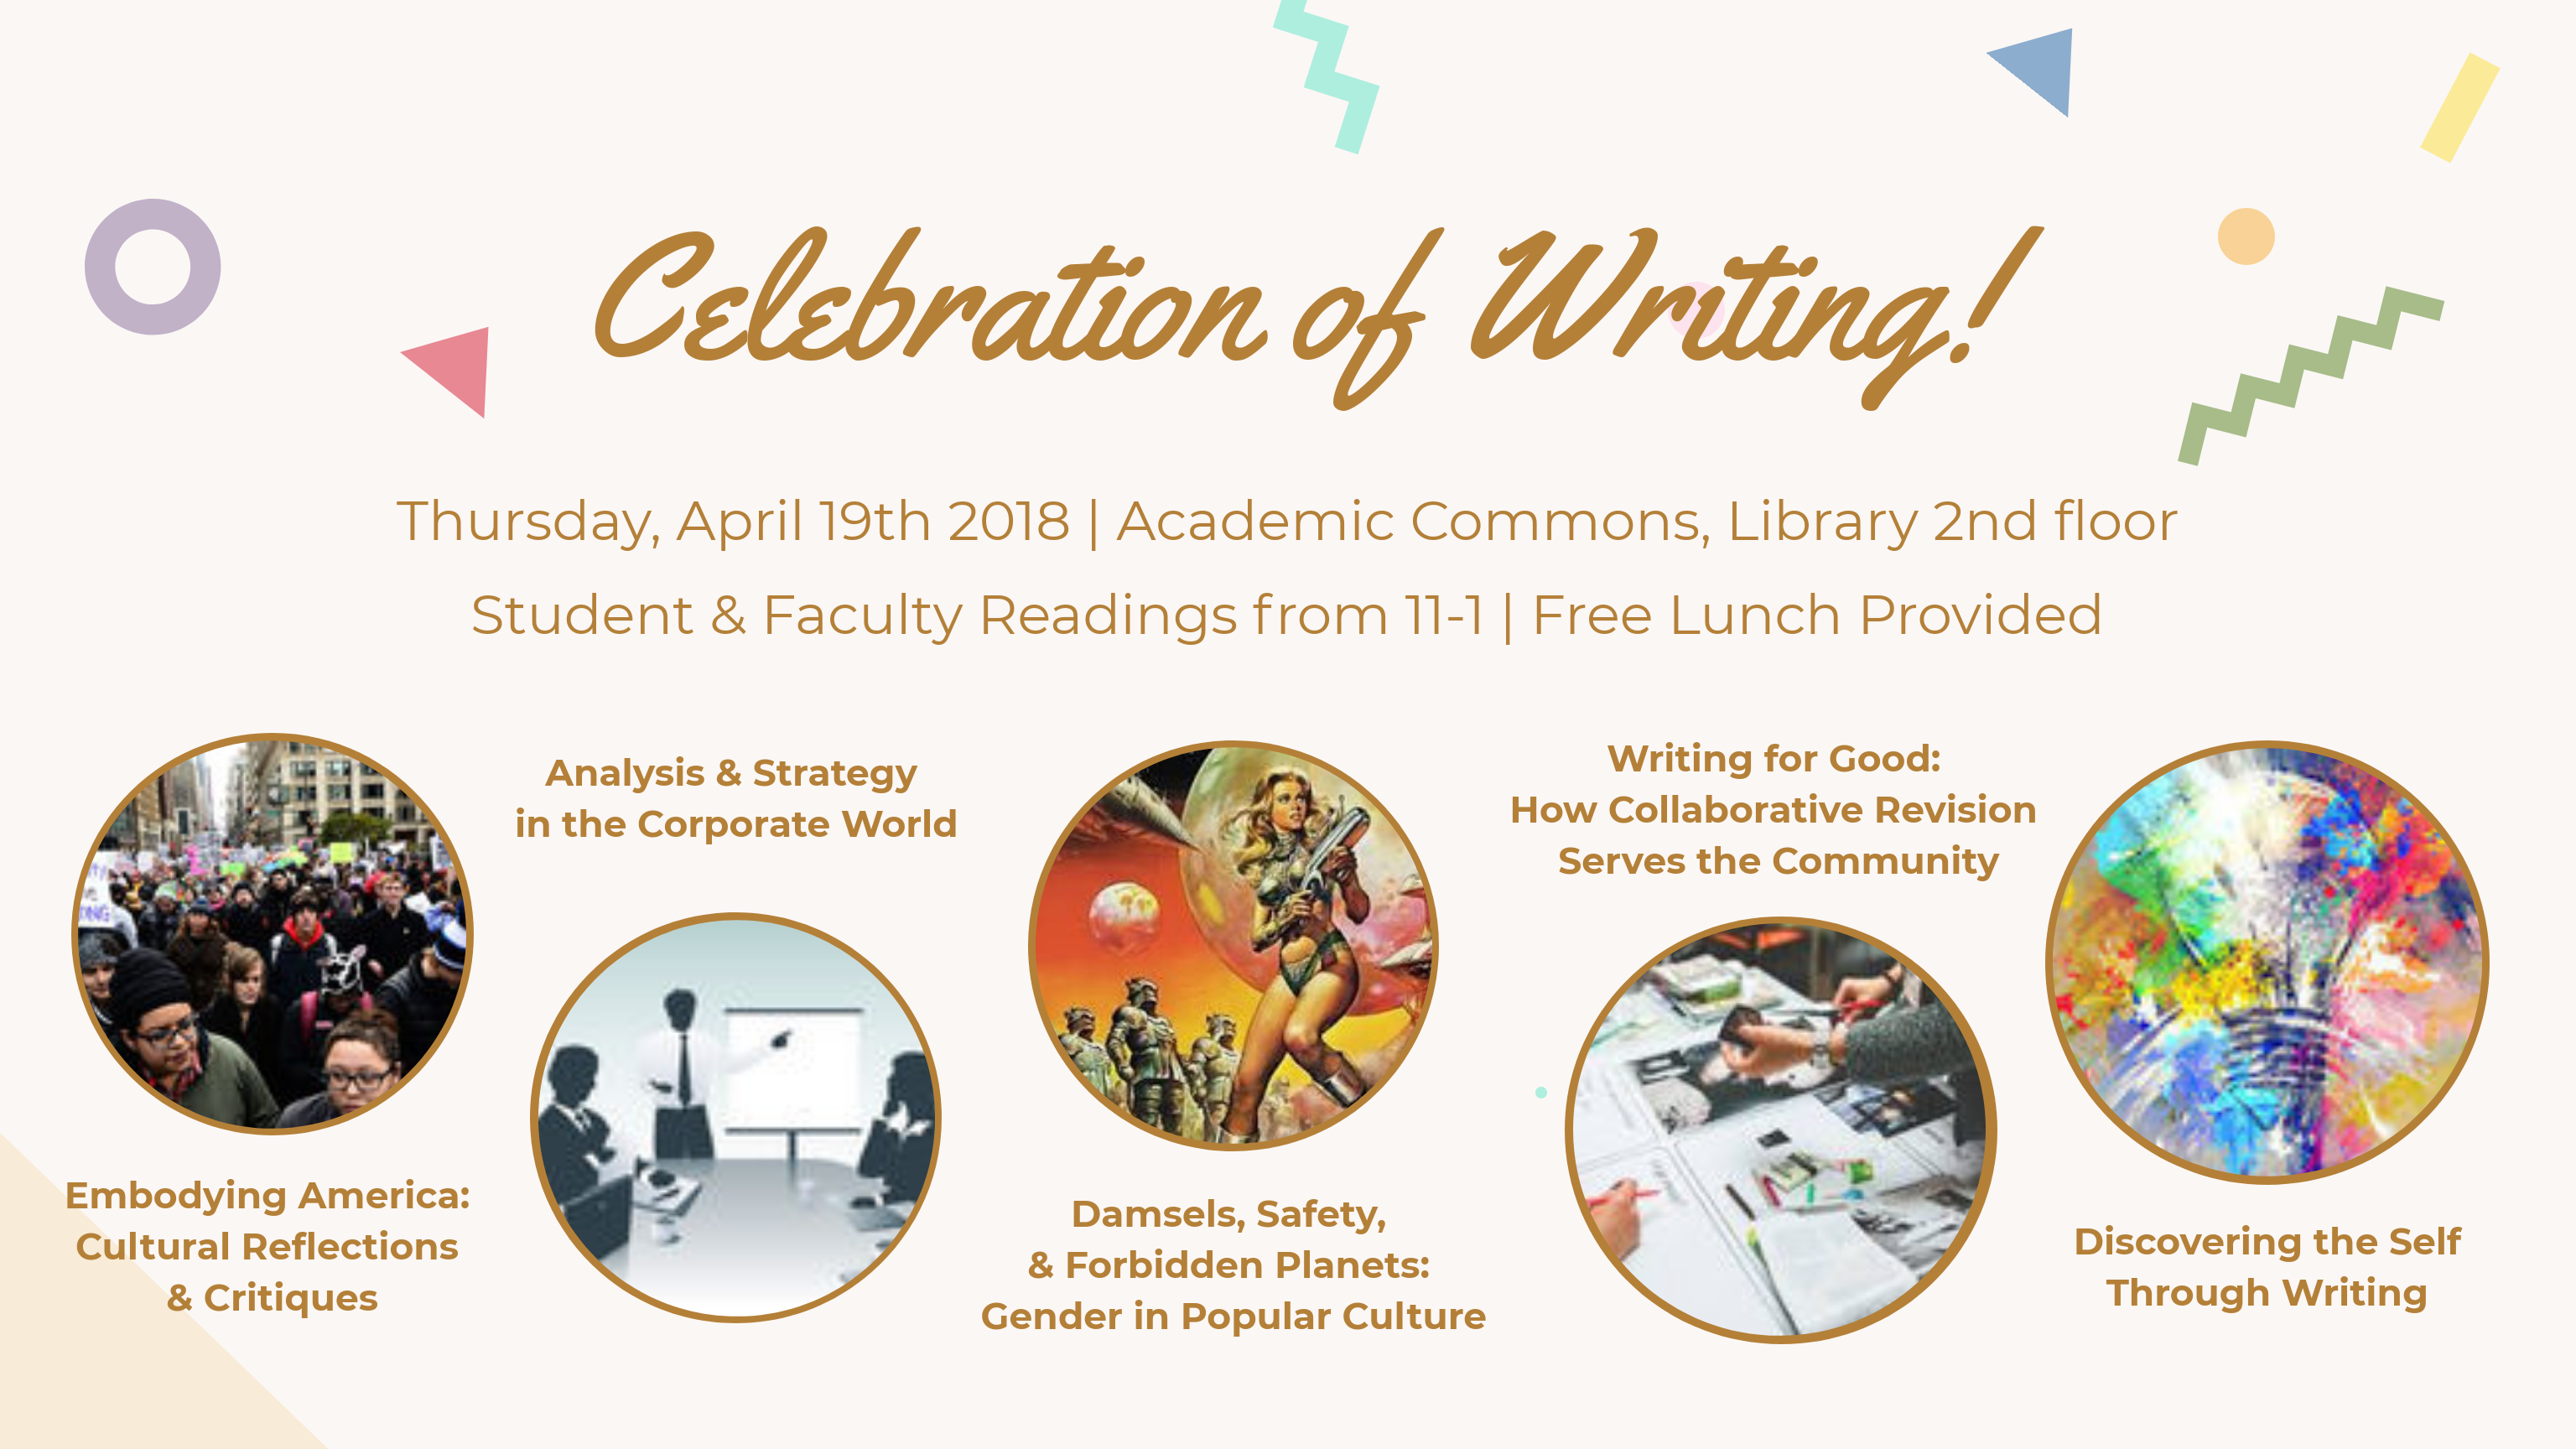 Celebration of Writing